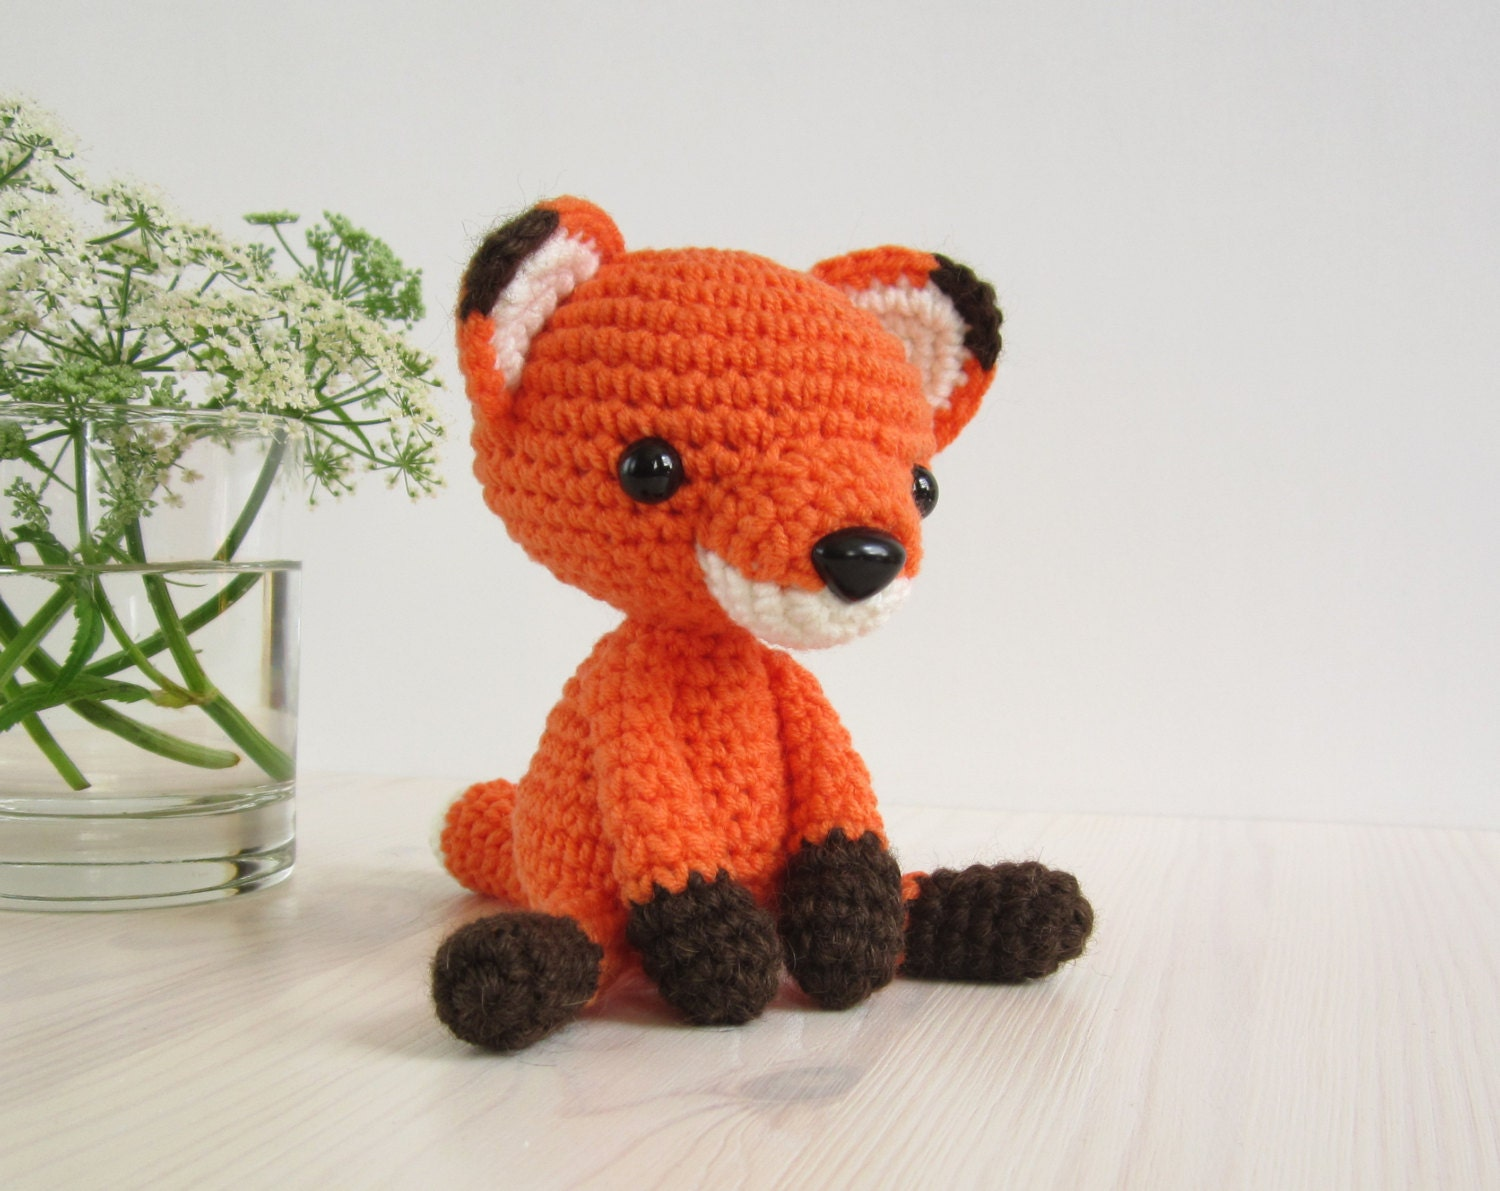 Micro Amigurumi Animal Patterns : PATTERN: Small sitting fox Stuffed animal Tiny by KristiTullus